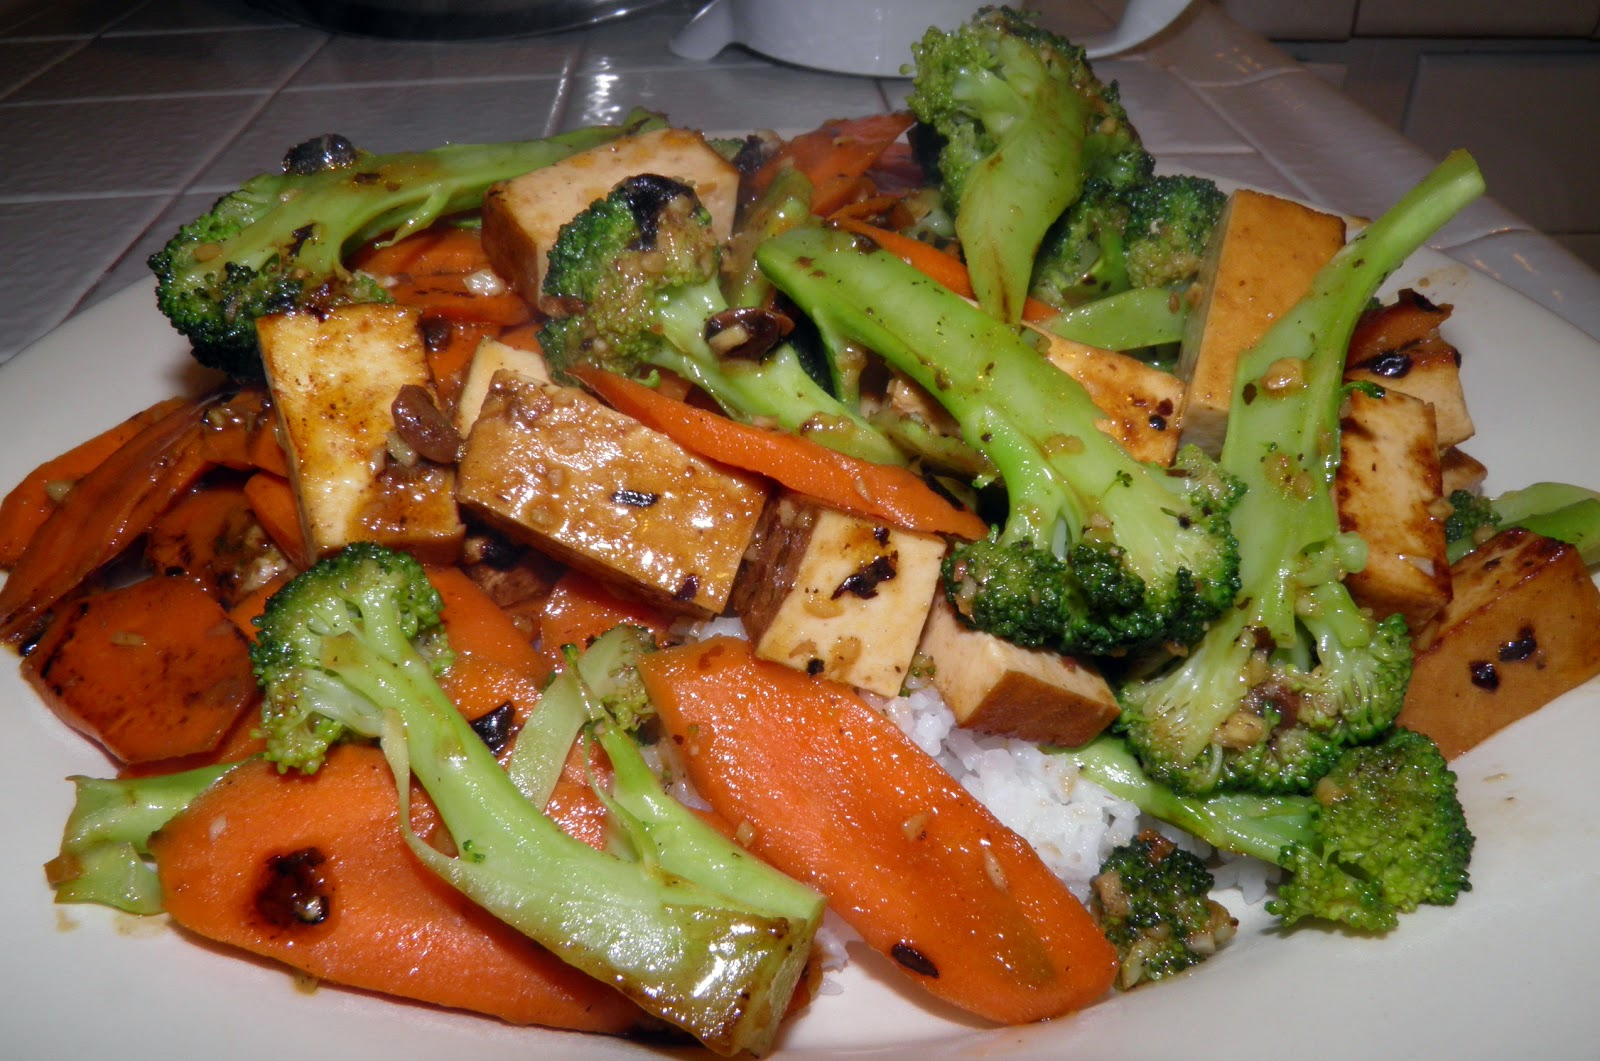 Stir Fry Tofu, Broccoli, and Carrots w/ Black Bean Sauce | Cook It ...